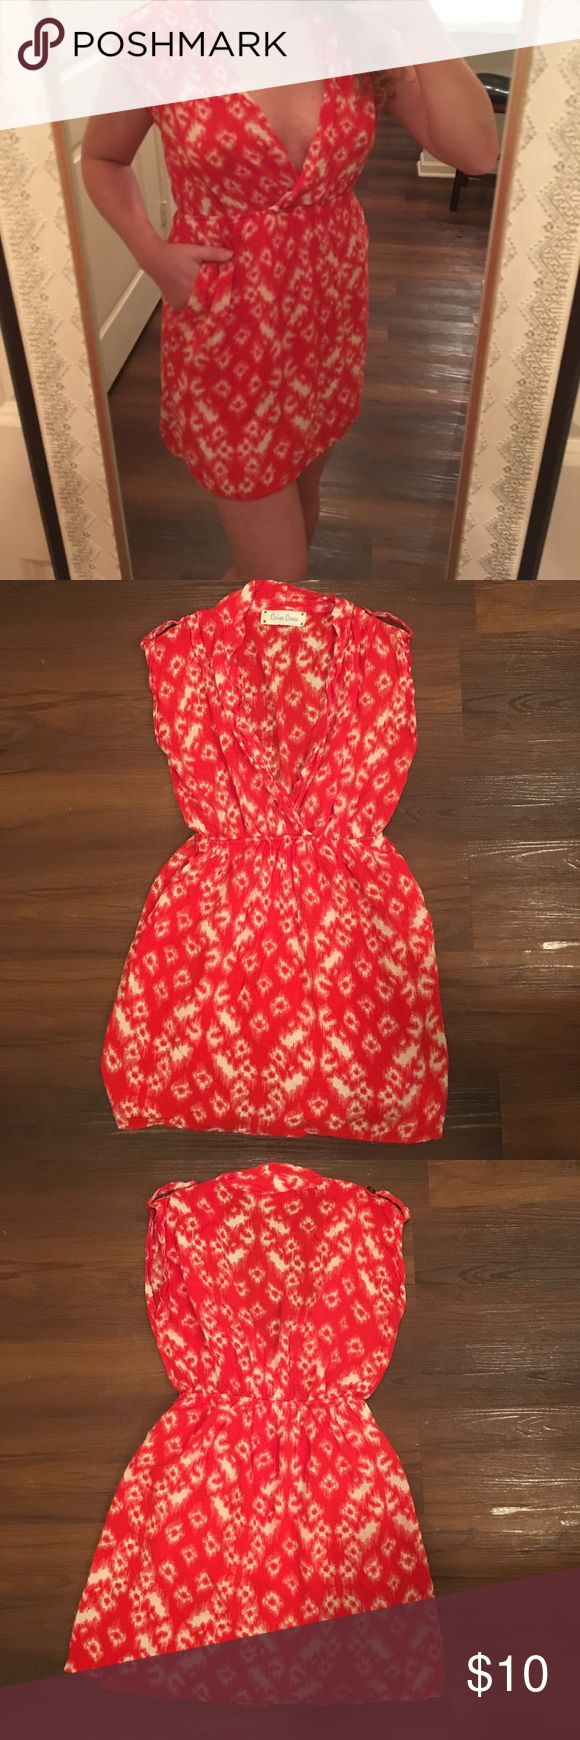 Blood Orange Mini Dress Vibrant red-orange Mini Dress with a white pattern and pockets. The skirt of the dress has an inner lining to aid in support and peace of mind when the wind blows. Good condition. Willing to accept bundles/offers, if fair. Criss Cross Dresses Mini